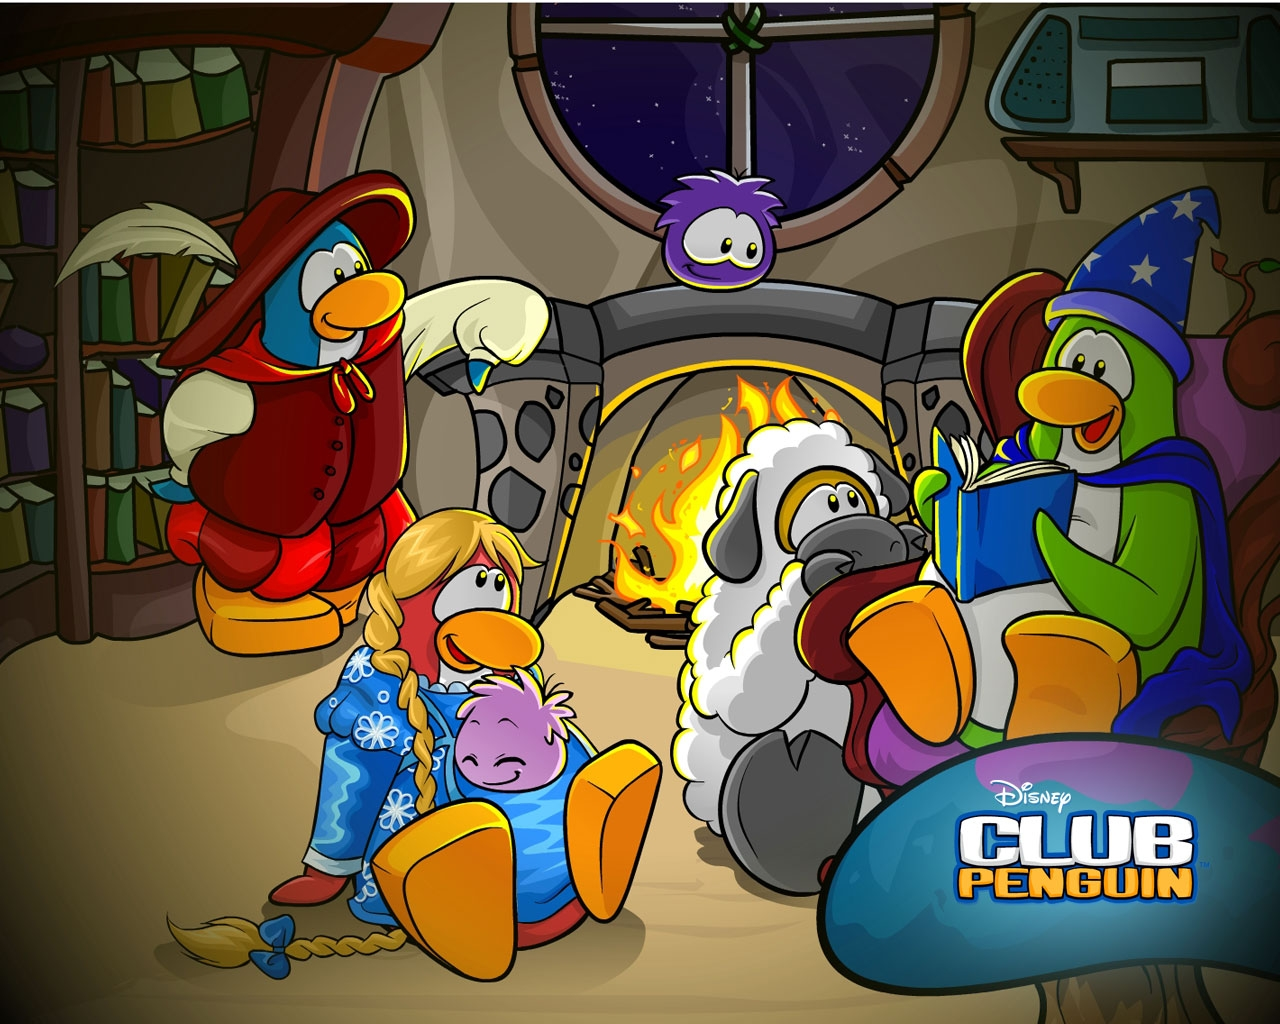 Club Penguin Imagenes Comics Y Wallpaper   Taringa 1280x1024